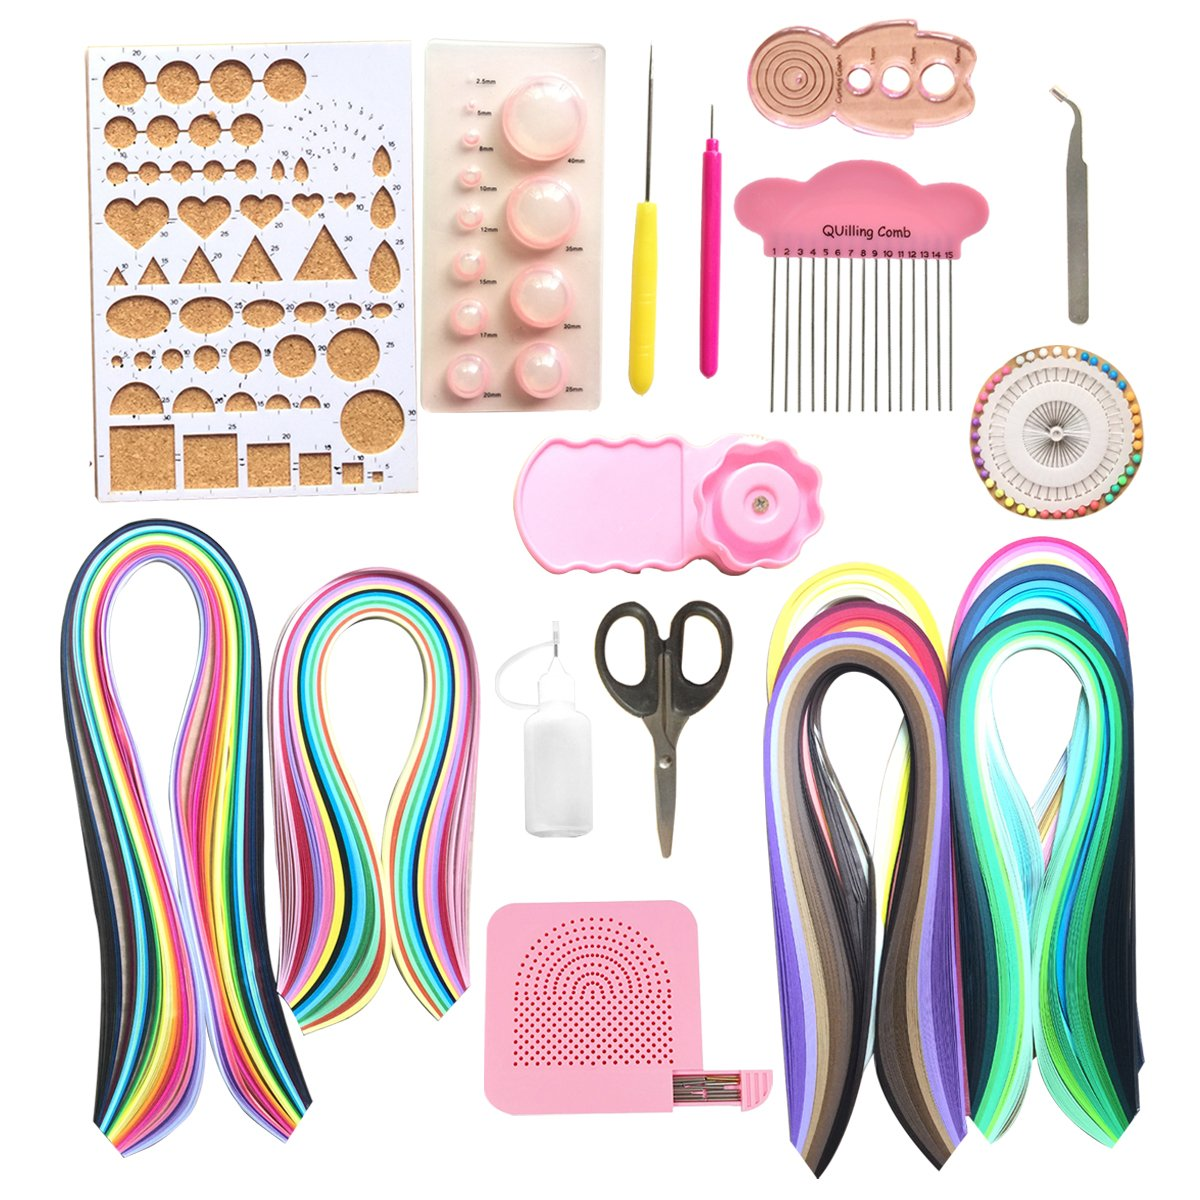 Lantee Quilling Supplies - 20 Sets of Quilling Paper Kits Include 8 Pack of 3mm 960 Quilling Paper Strips and 12 Quilling Tools by Lantee (Image #1)